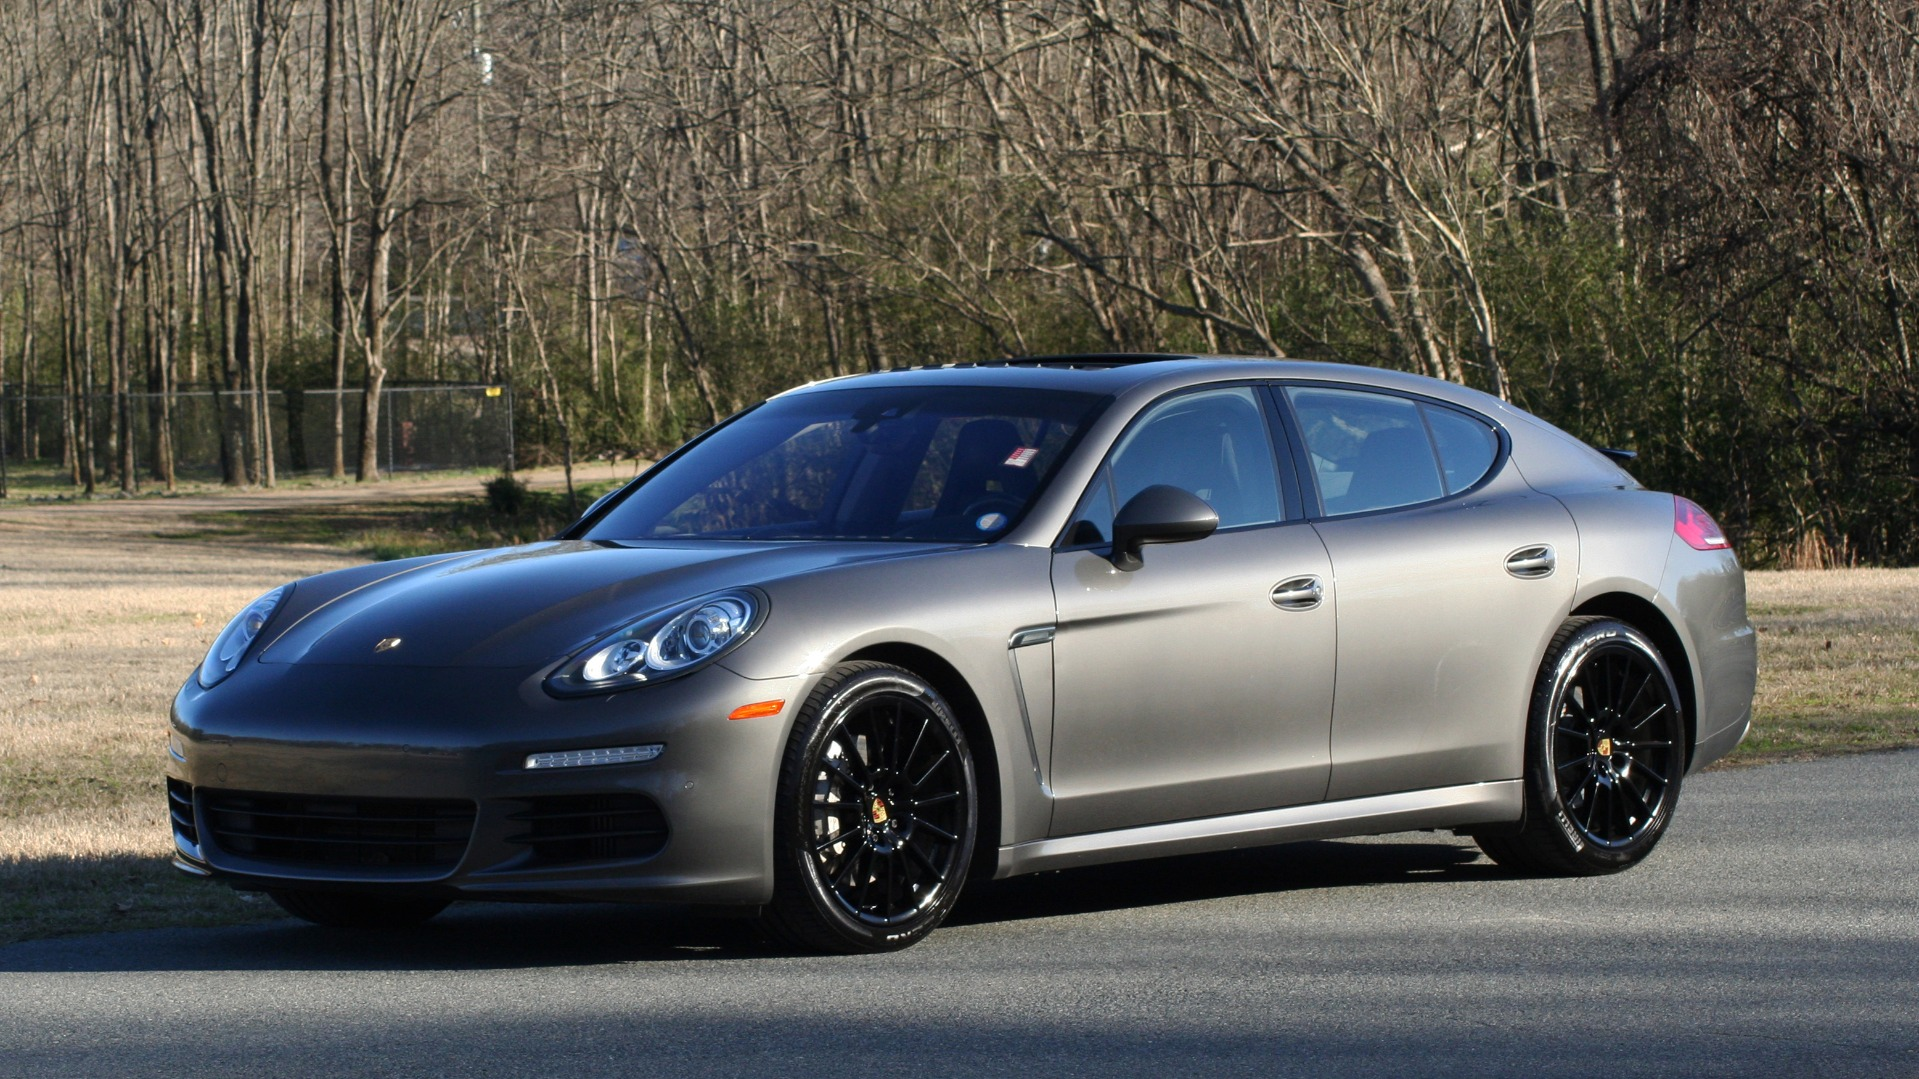 Used 2016 Porsche PANAMERA S / TURBO V6 / PDK / NAV / BOSE / SNRF / LDW / REARVIEW for sale Sold at Formula Imports in Charlotte NC 28227 1